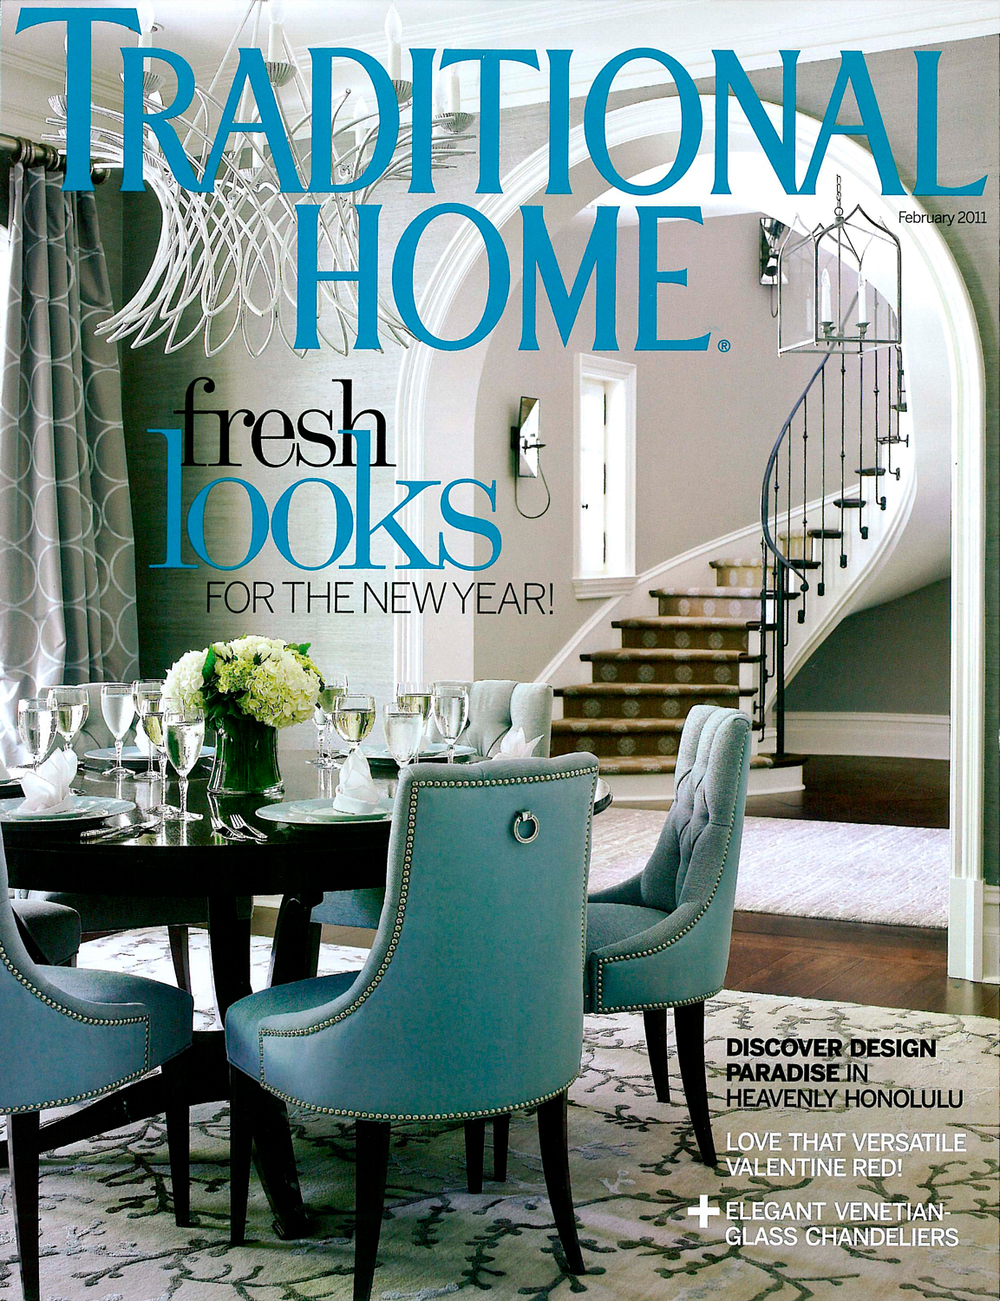 The February 2011 issue of  Traditional Home  magazine featured an Atlanta home with one of our custom hoods.